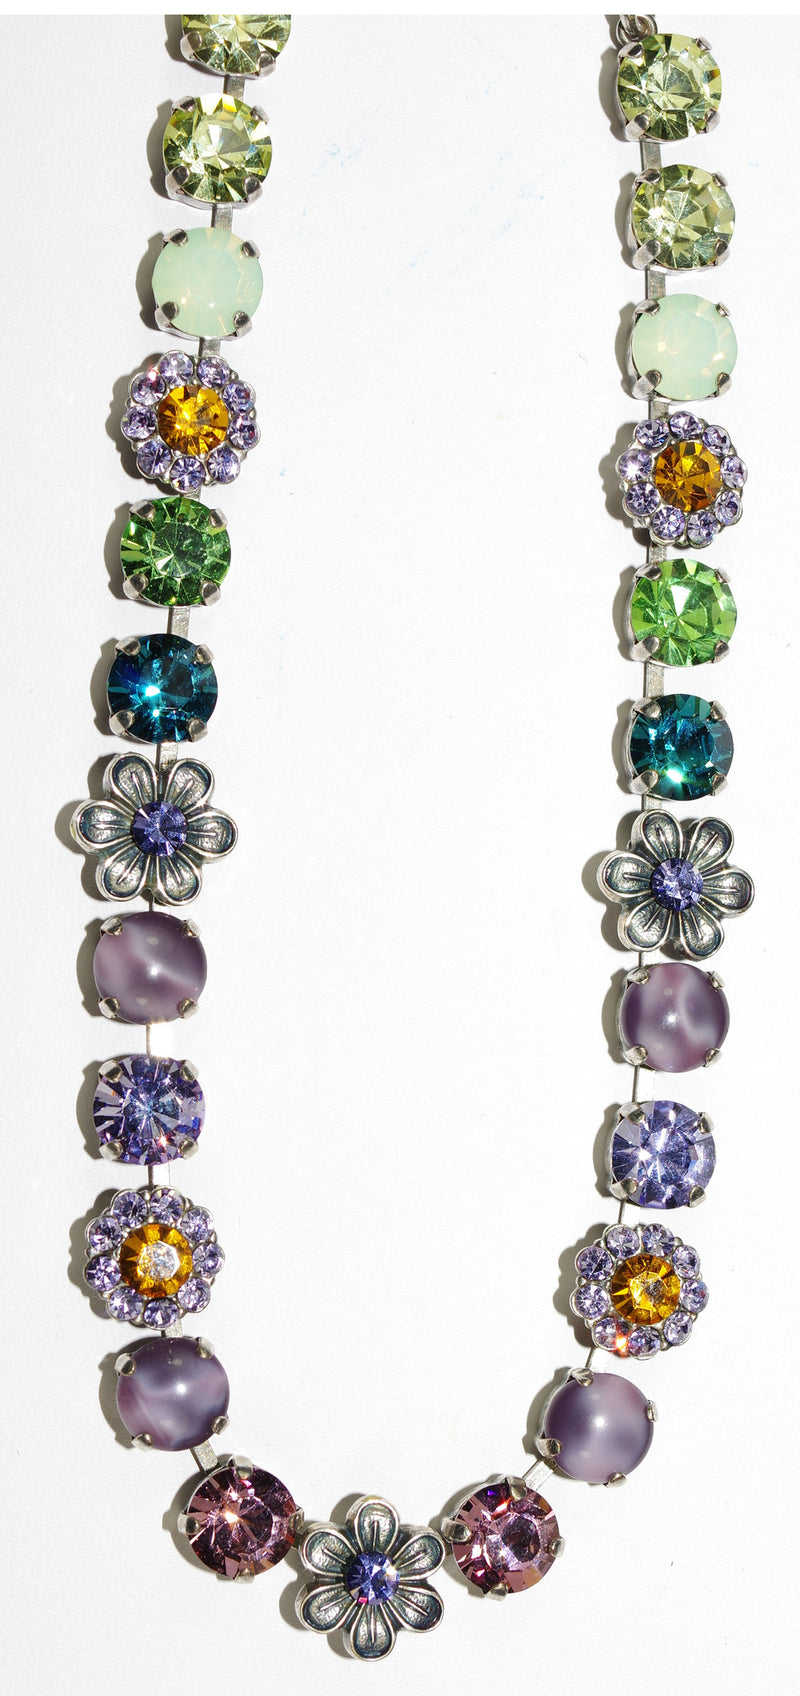 "MARIANA NECKLACE LILAC: lavender, green, blue, amber, pink stones in silver setting, 18"" adjustable chain"